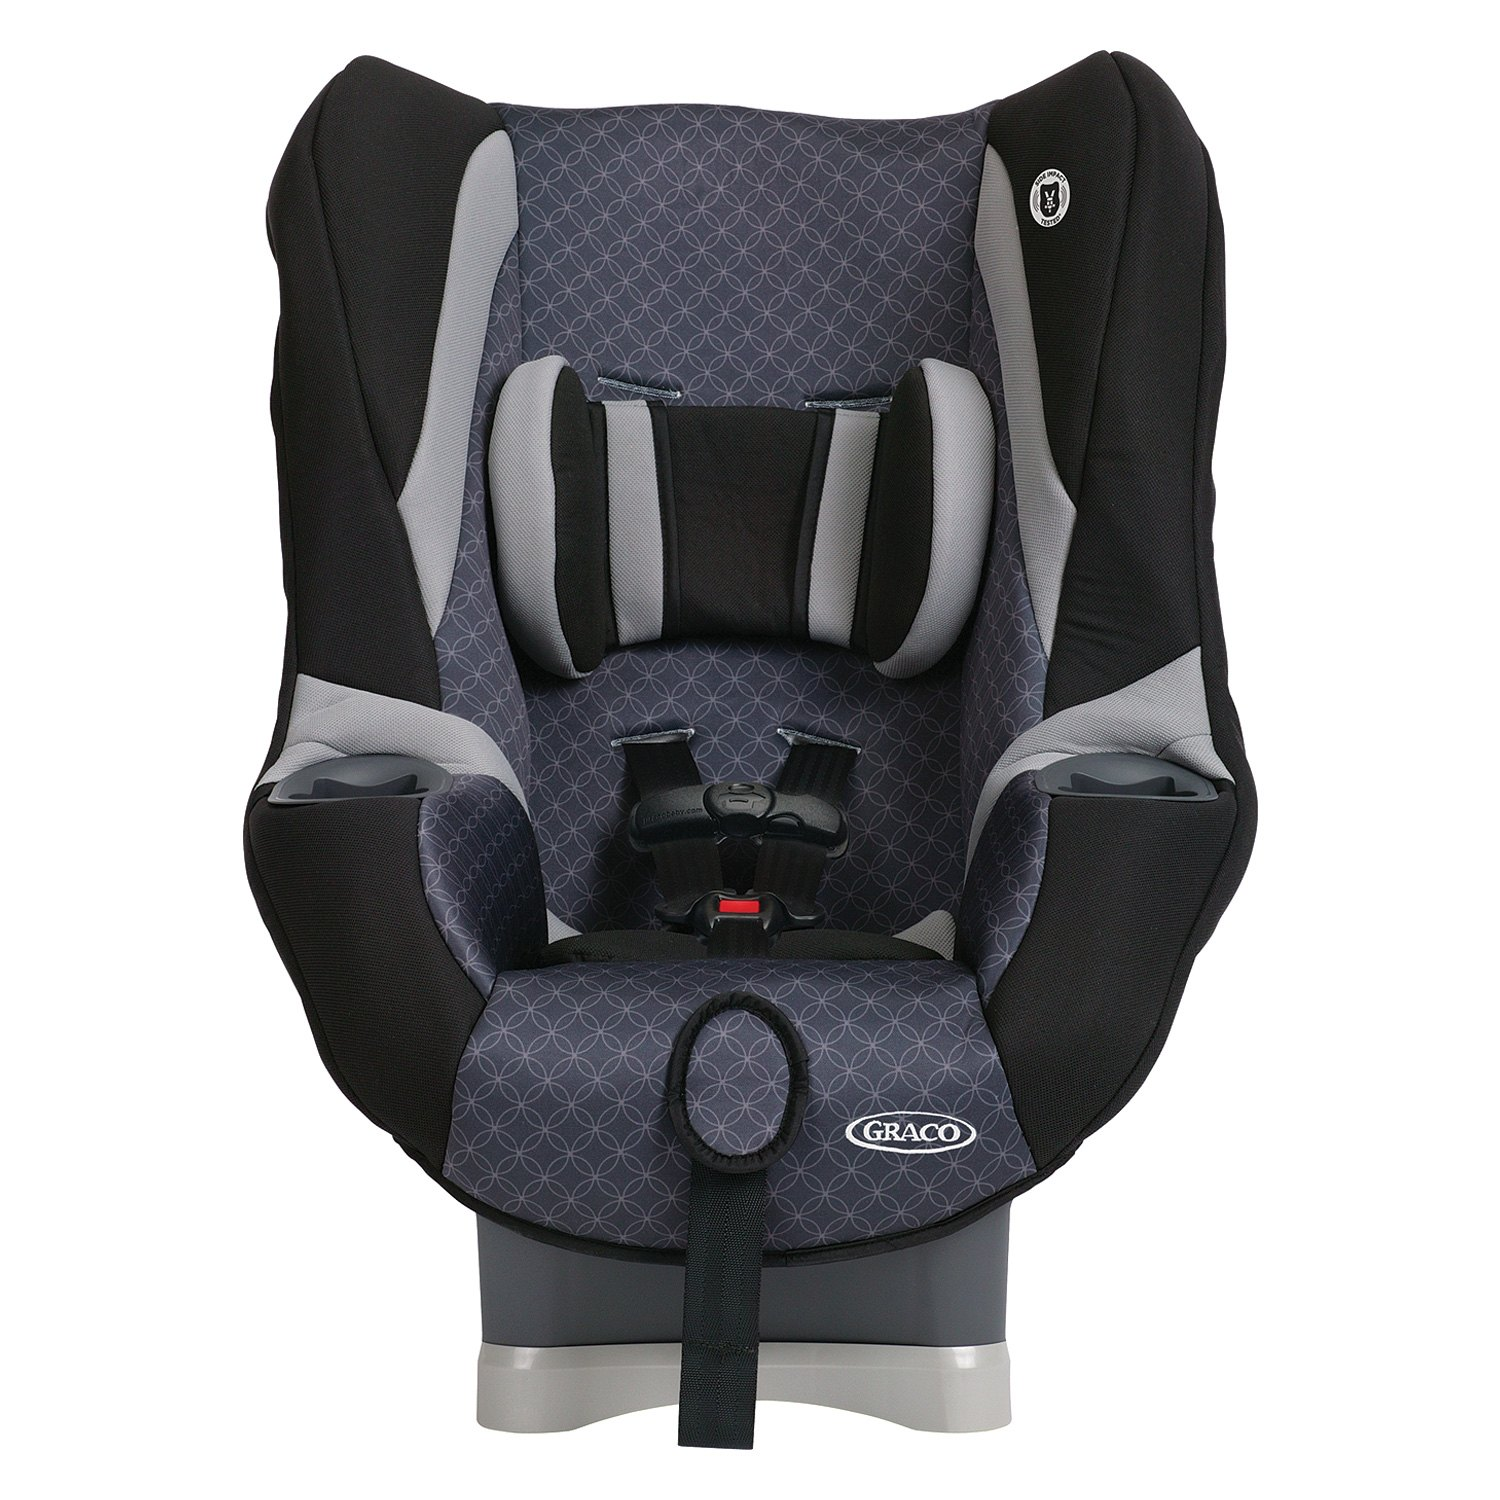 graco baby 1813074 my ride coda style 65 lx convertible car seat. Black Bedroom Furniture Sets. Home Design Ideas